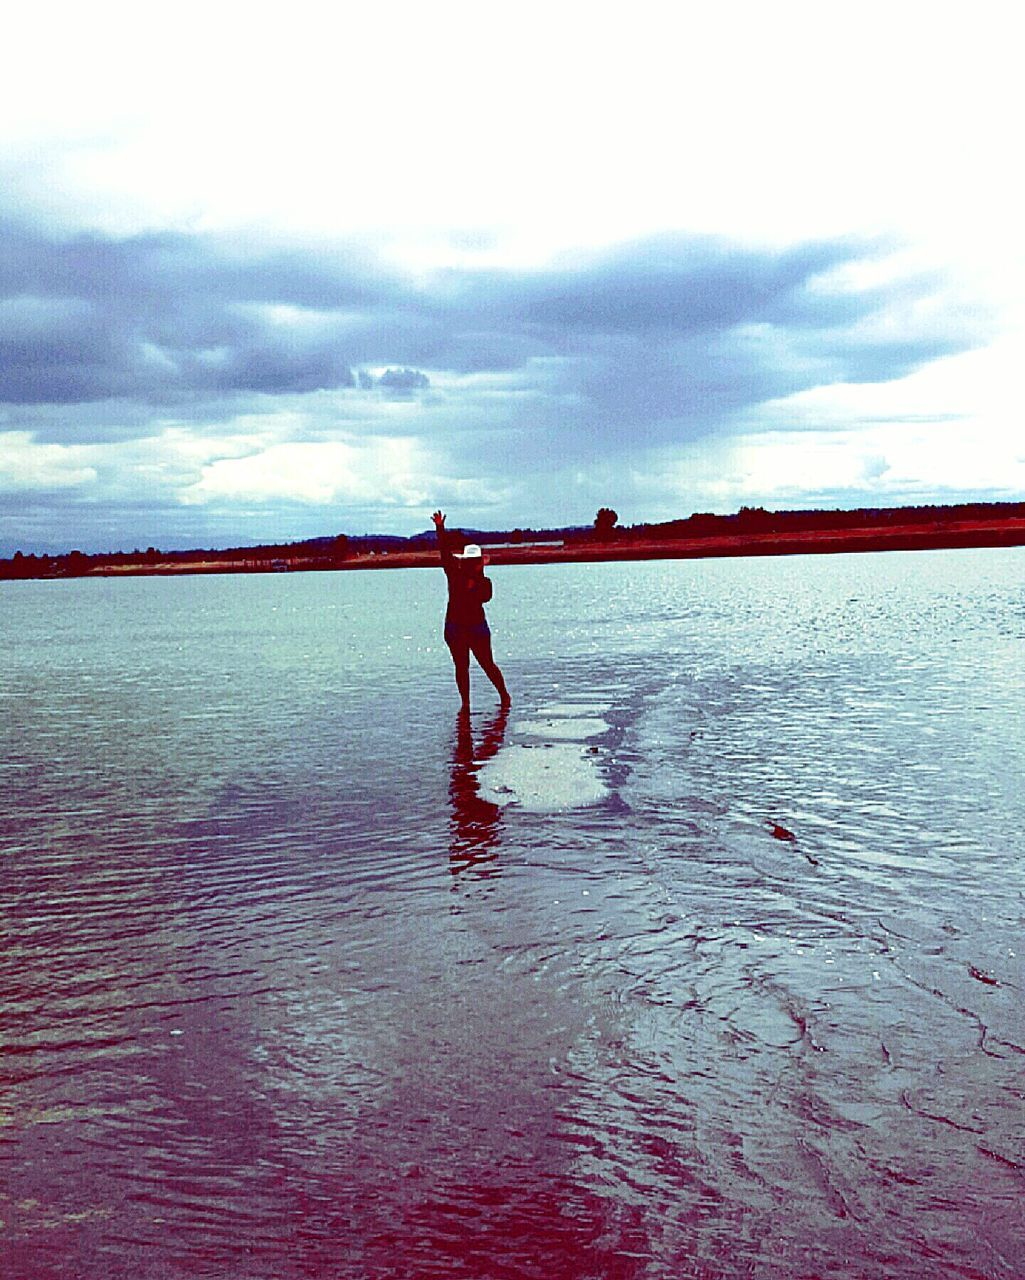 sky, water, cloud - sky, real people, sea, one person, standing, beauty in nature, waterfront, nature, leisure activity, lifestyles, day, full length, scenics - nature, reflection, tranquility, men, outdoors